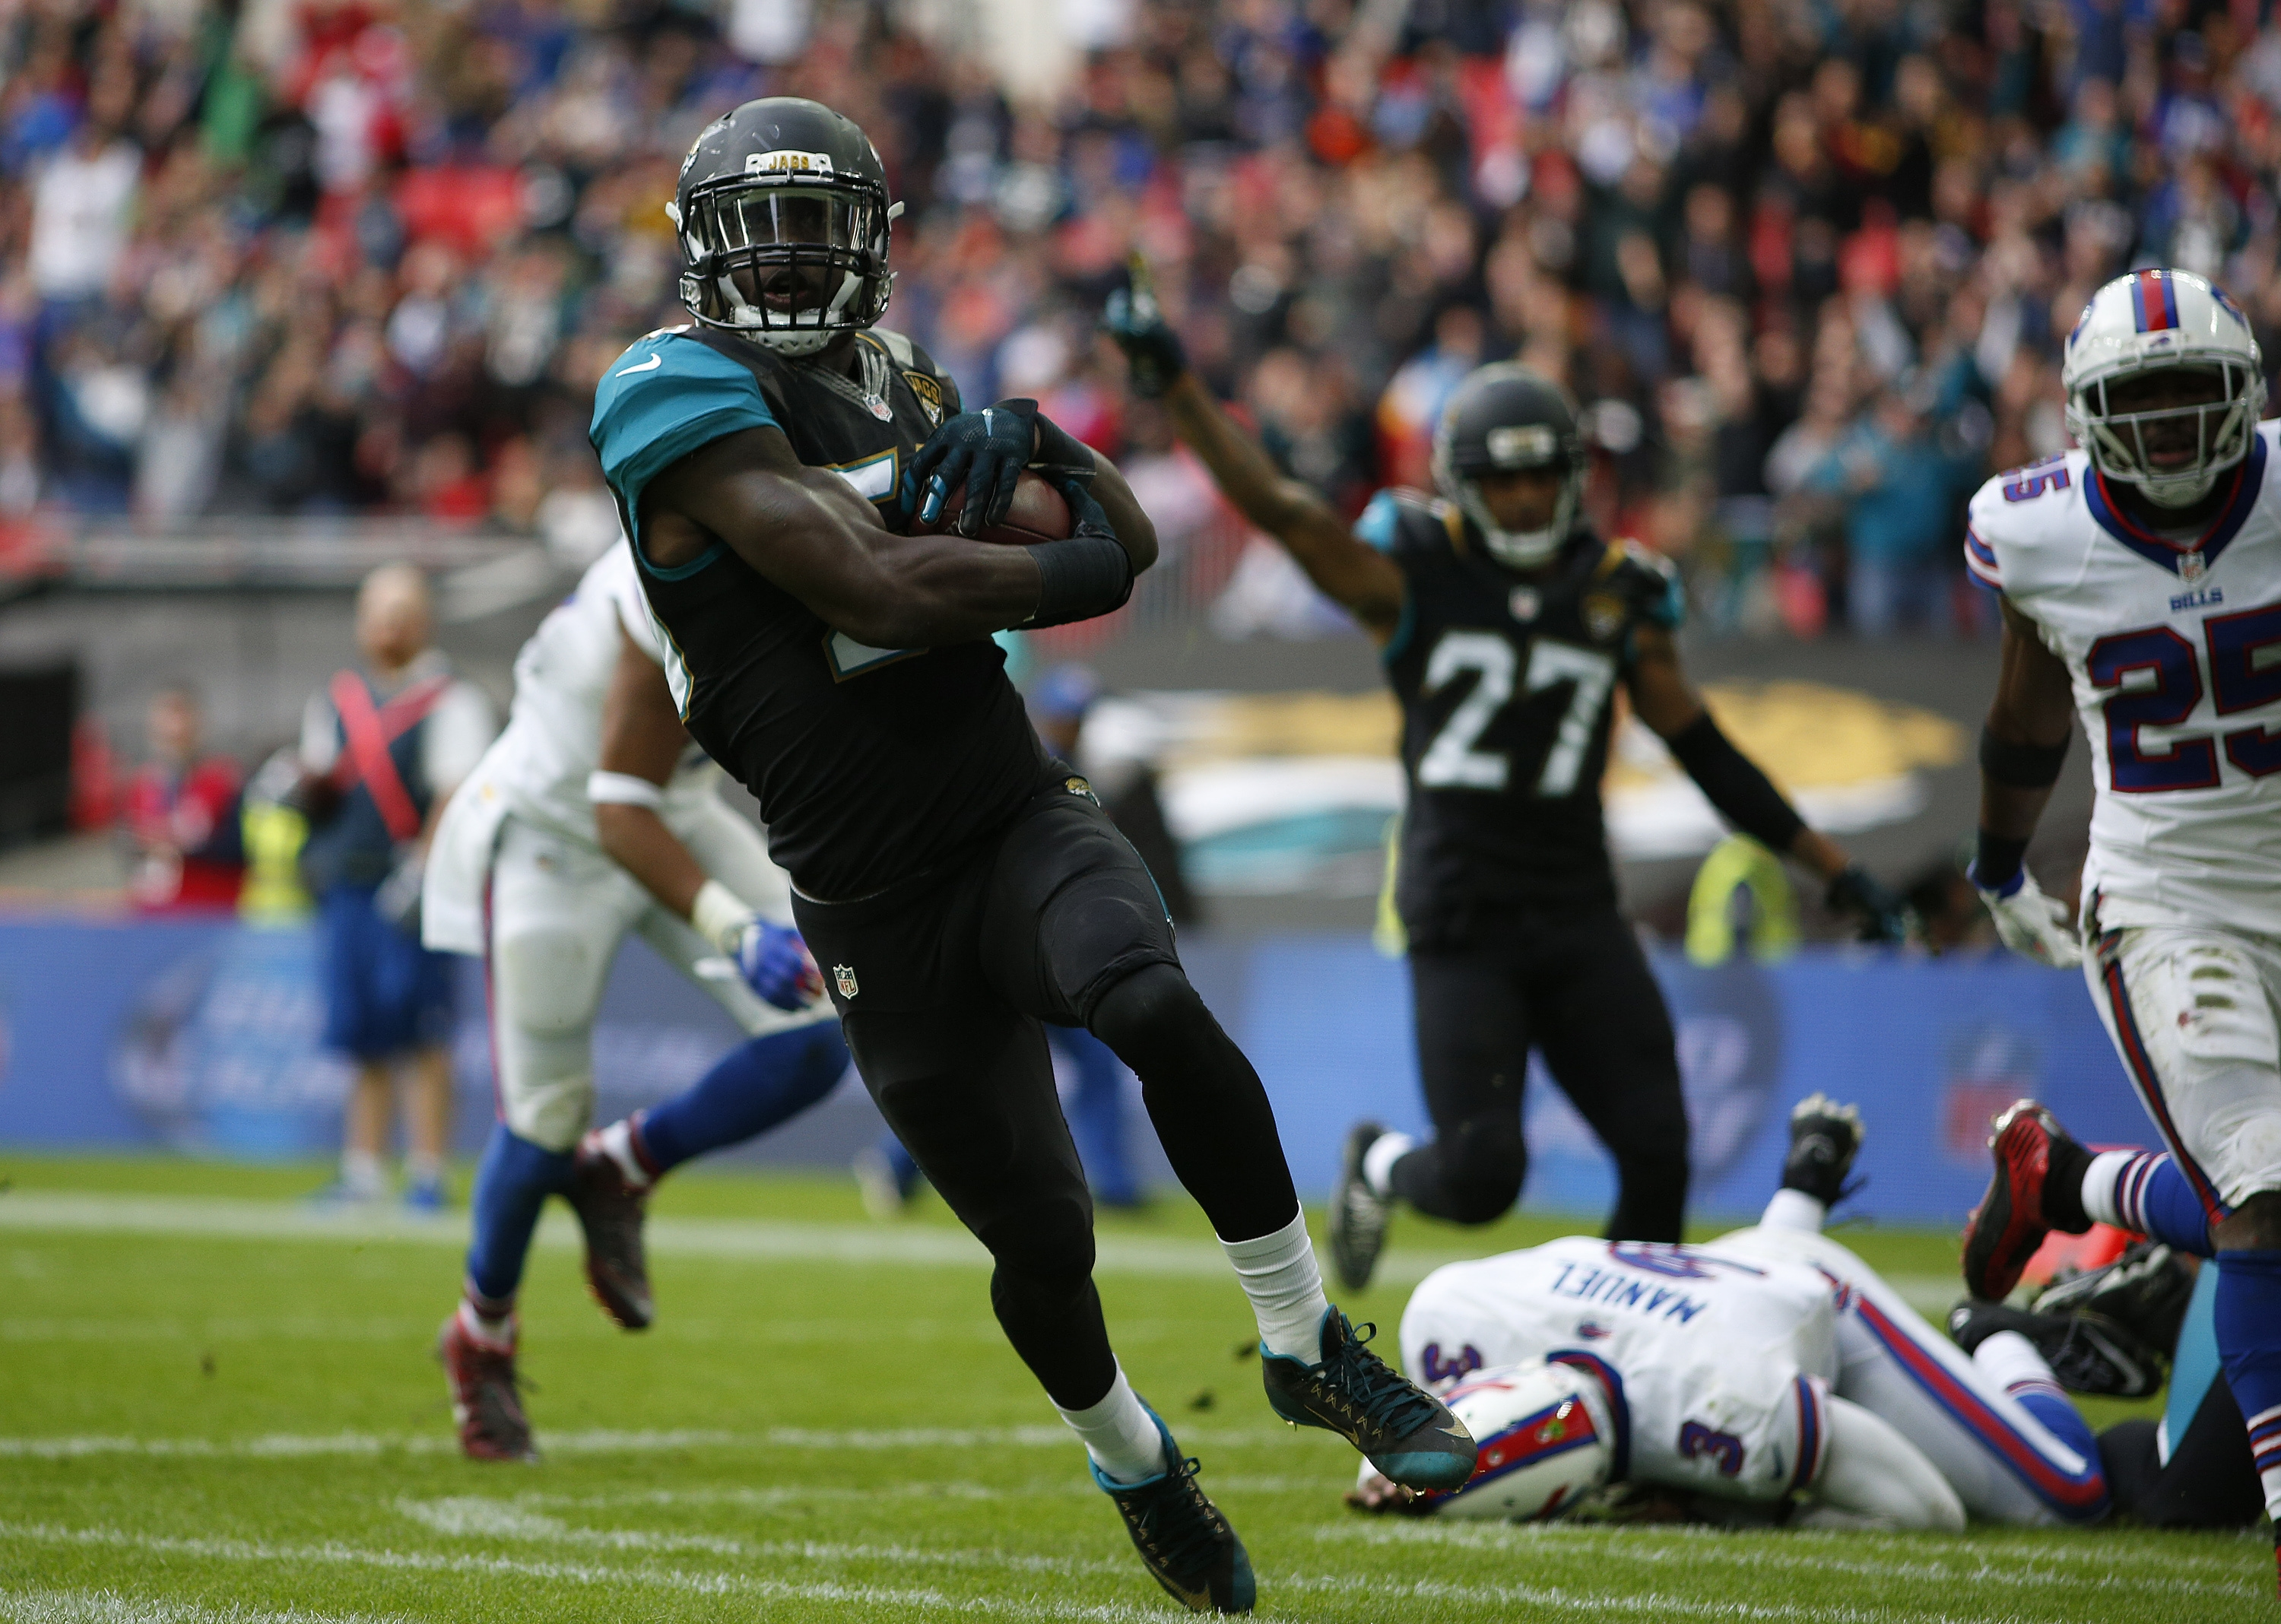 Jaguars linebacker Telvin Smith returns an interception thrown by the Bills' EJ Manuel for a touchdown during the second quarter at Wembley Stadium in London.